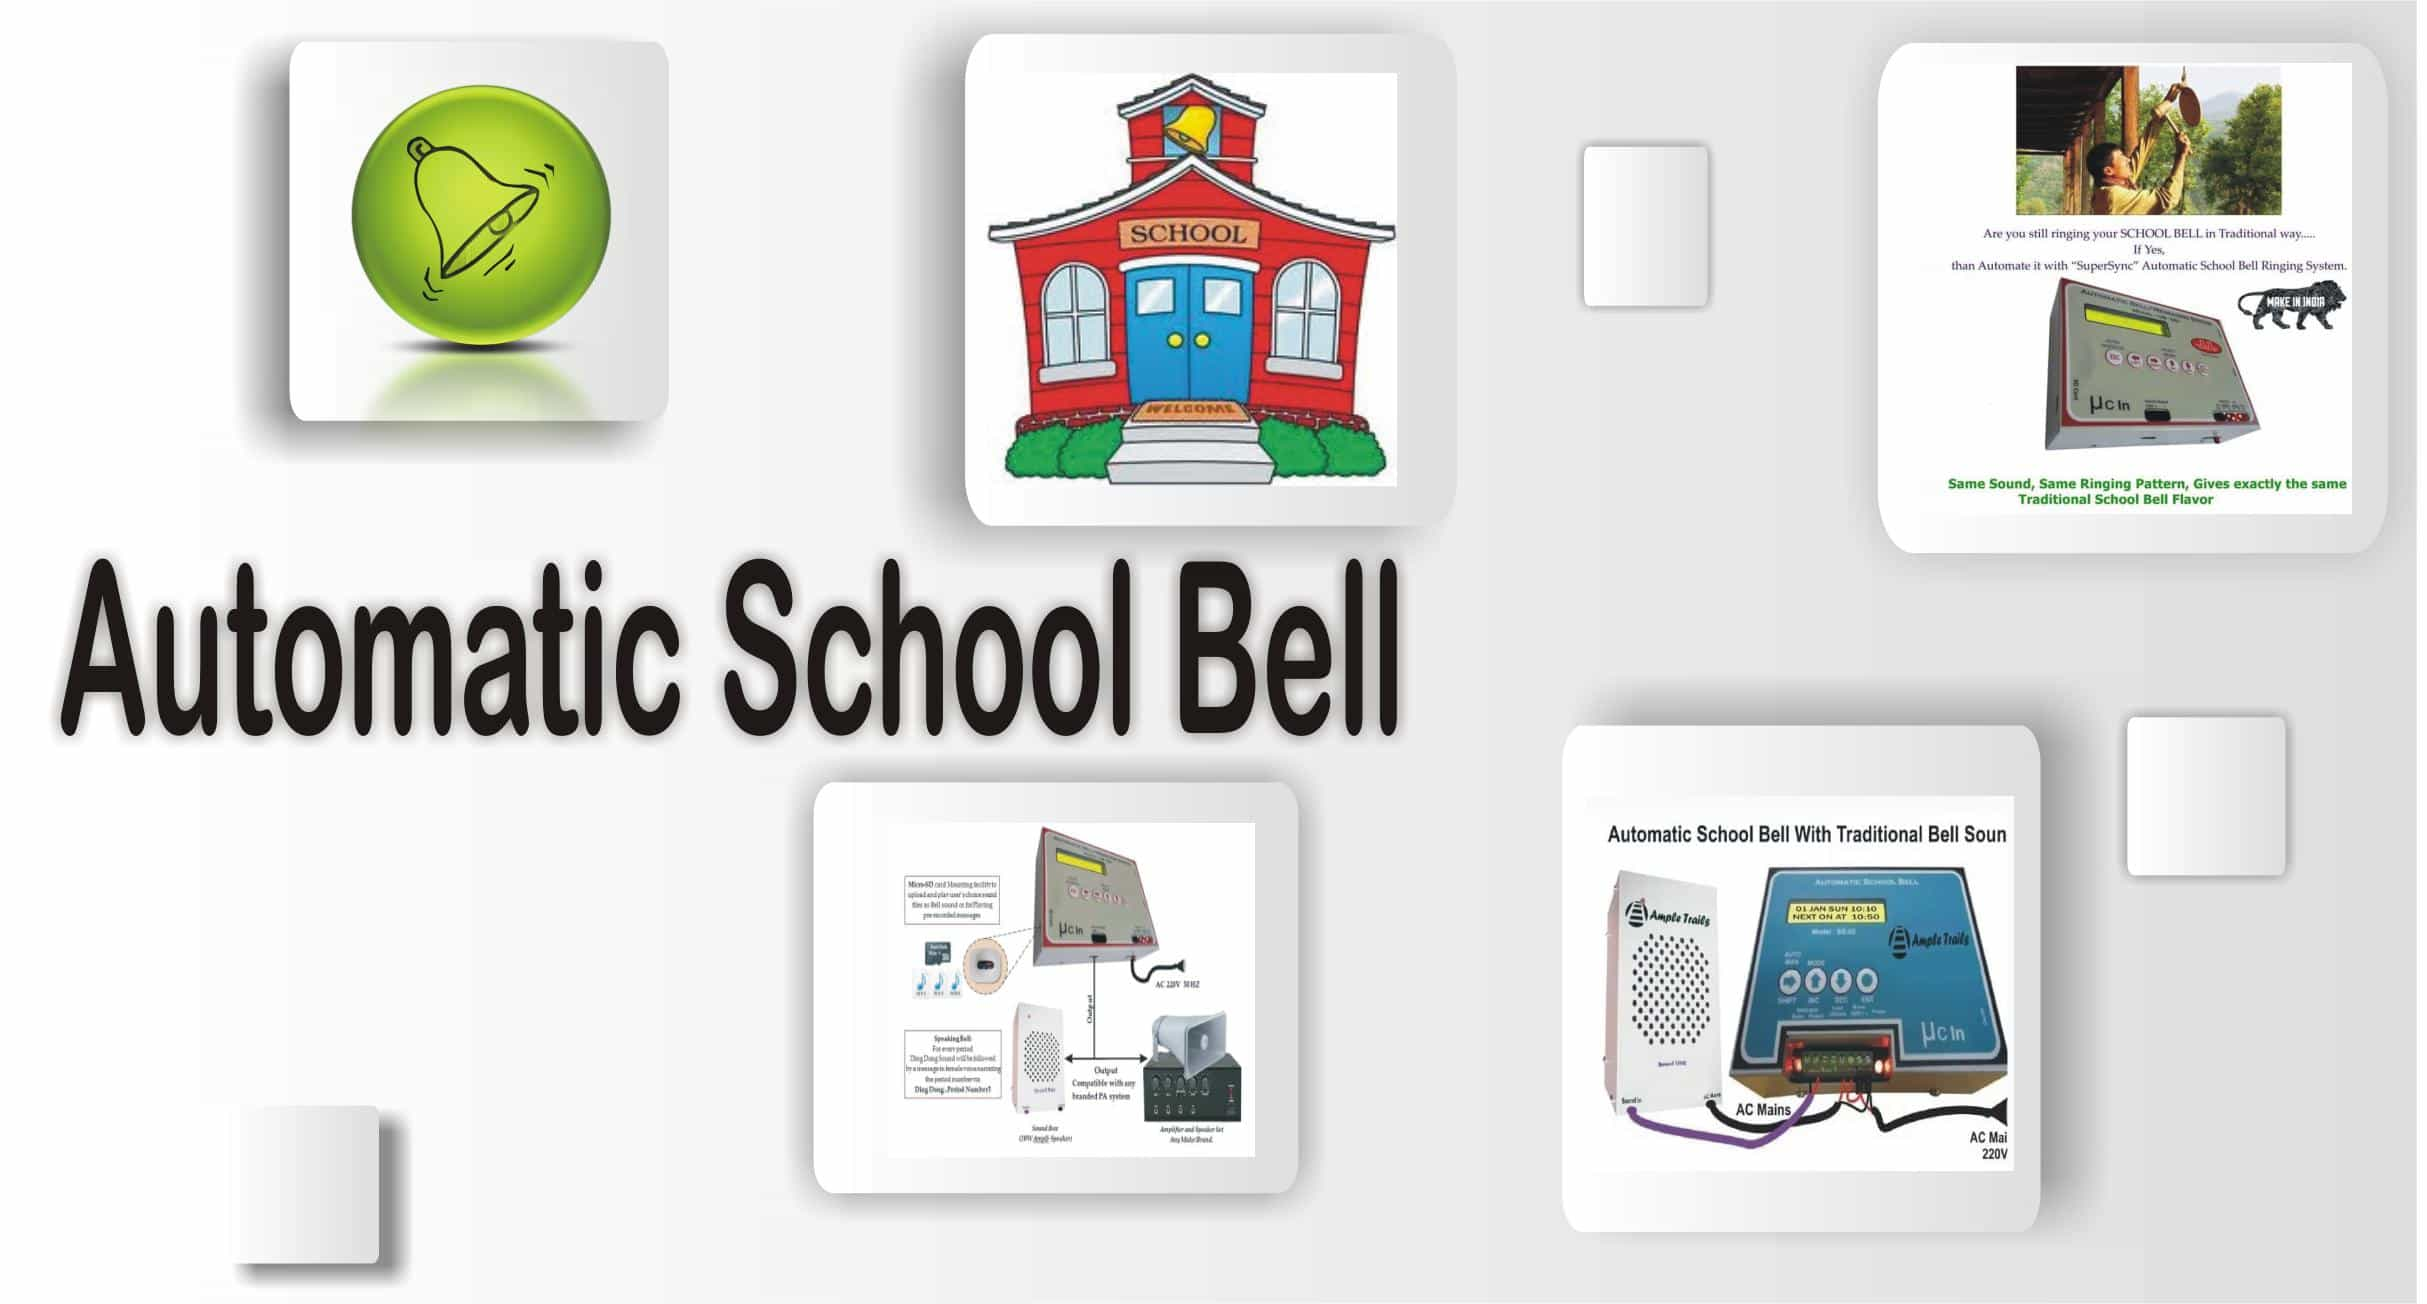 Automatic School Bell